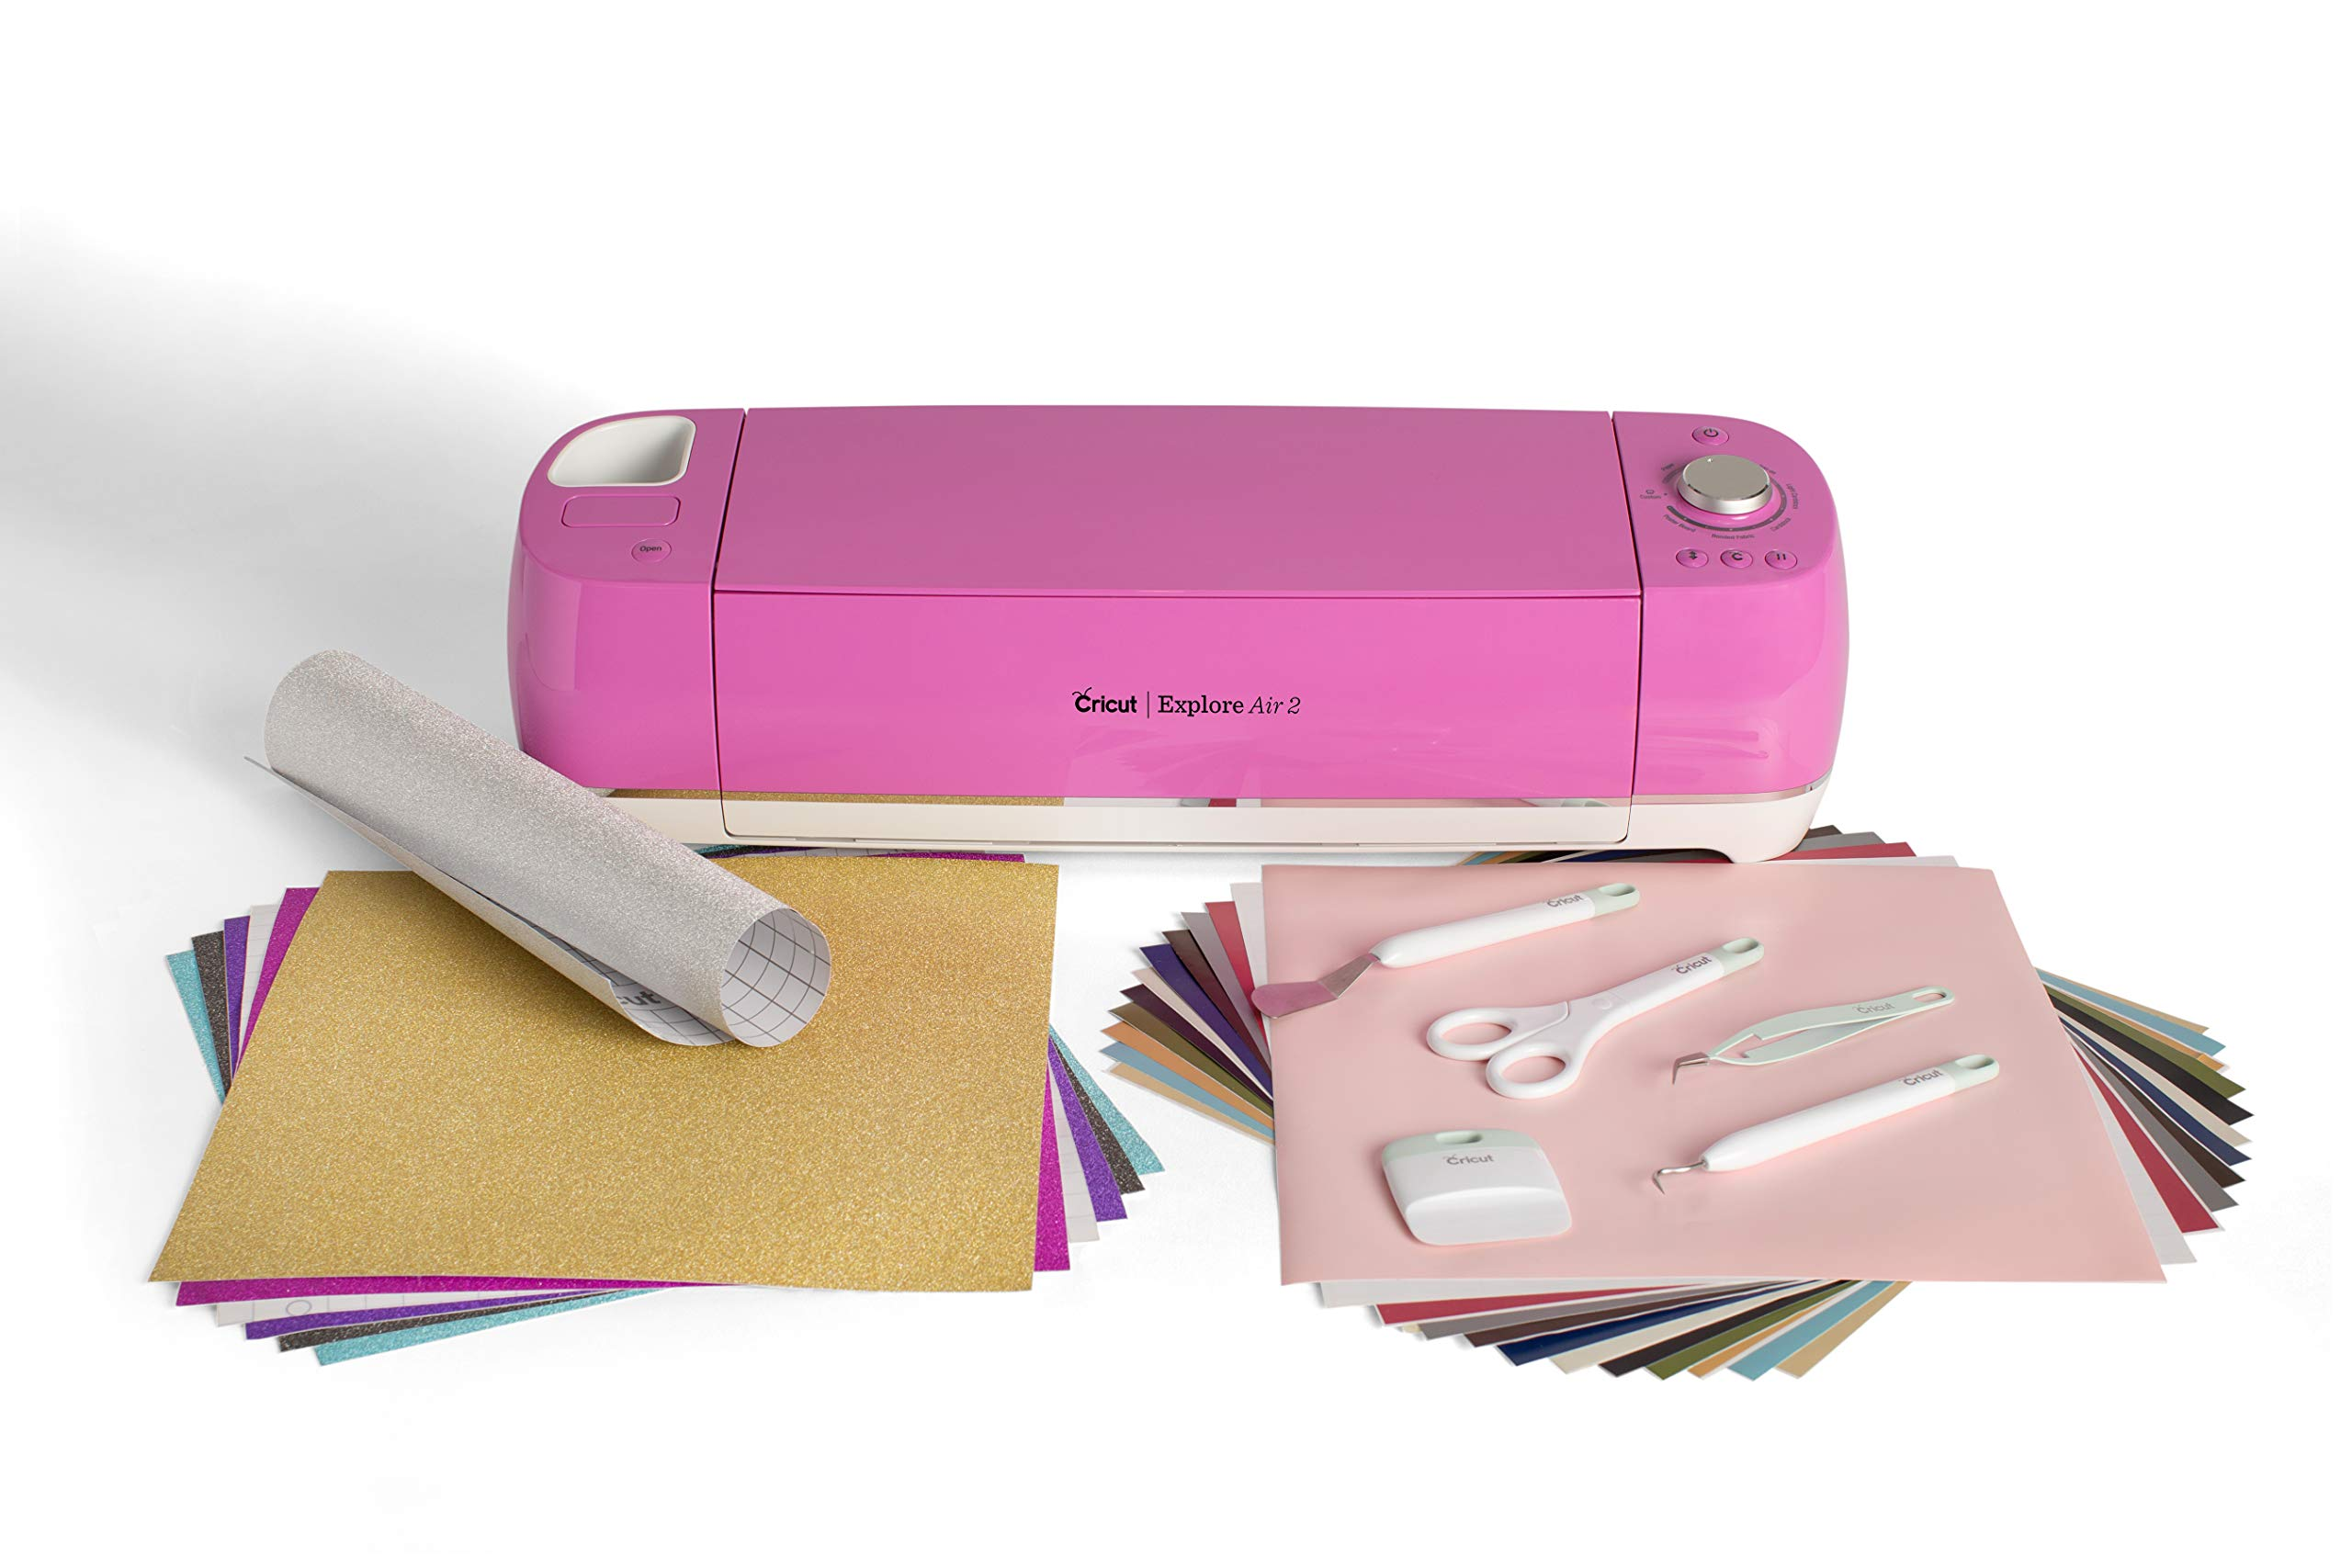 Cricut Explore Air 2 Fuchsia Bundle with Basic Tool Set and Two Vinyl Samplers